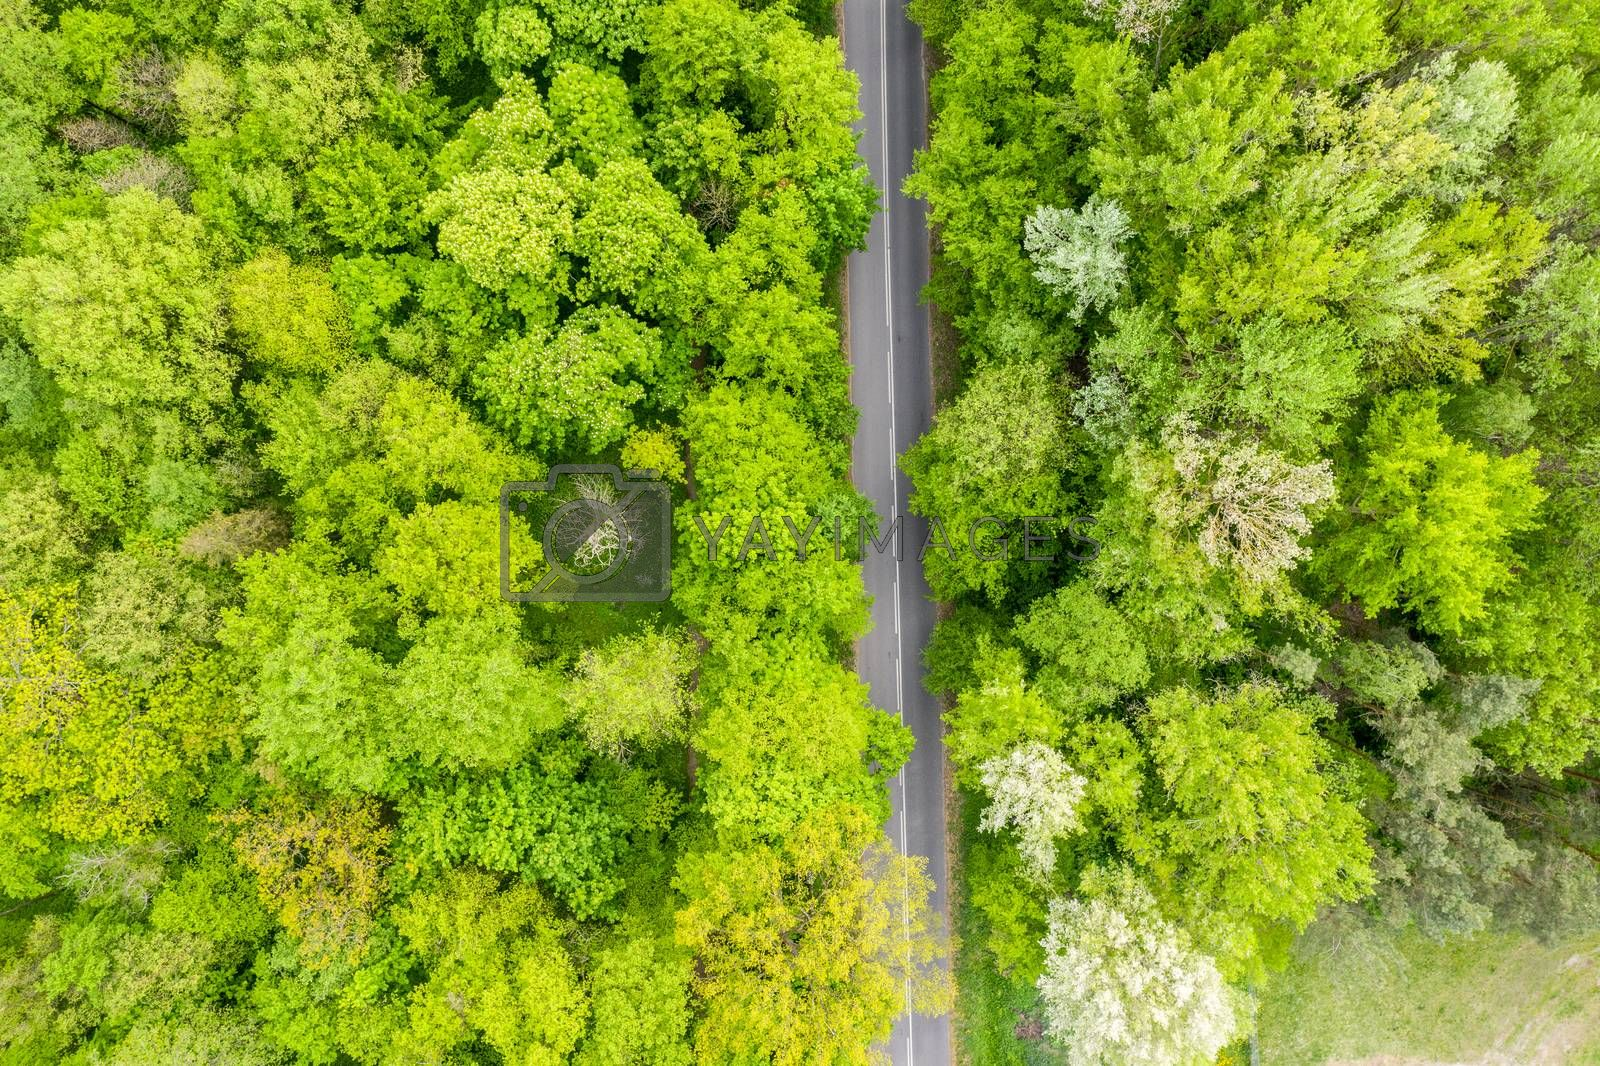 Aerial view of long road cutting through forest